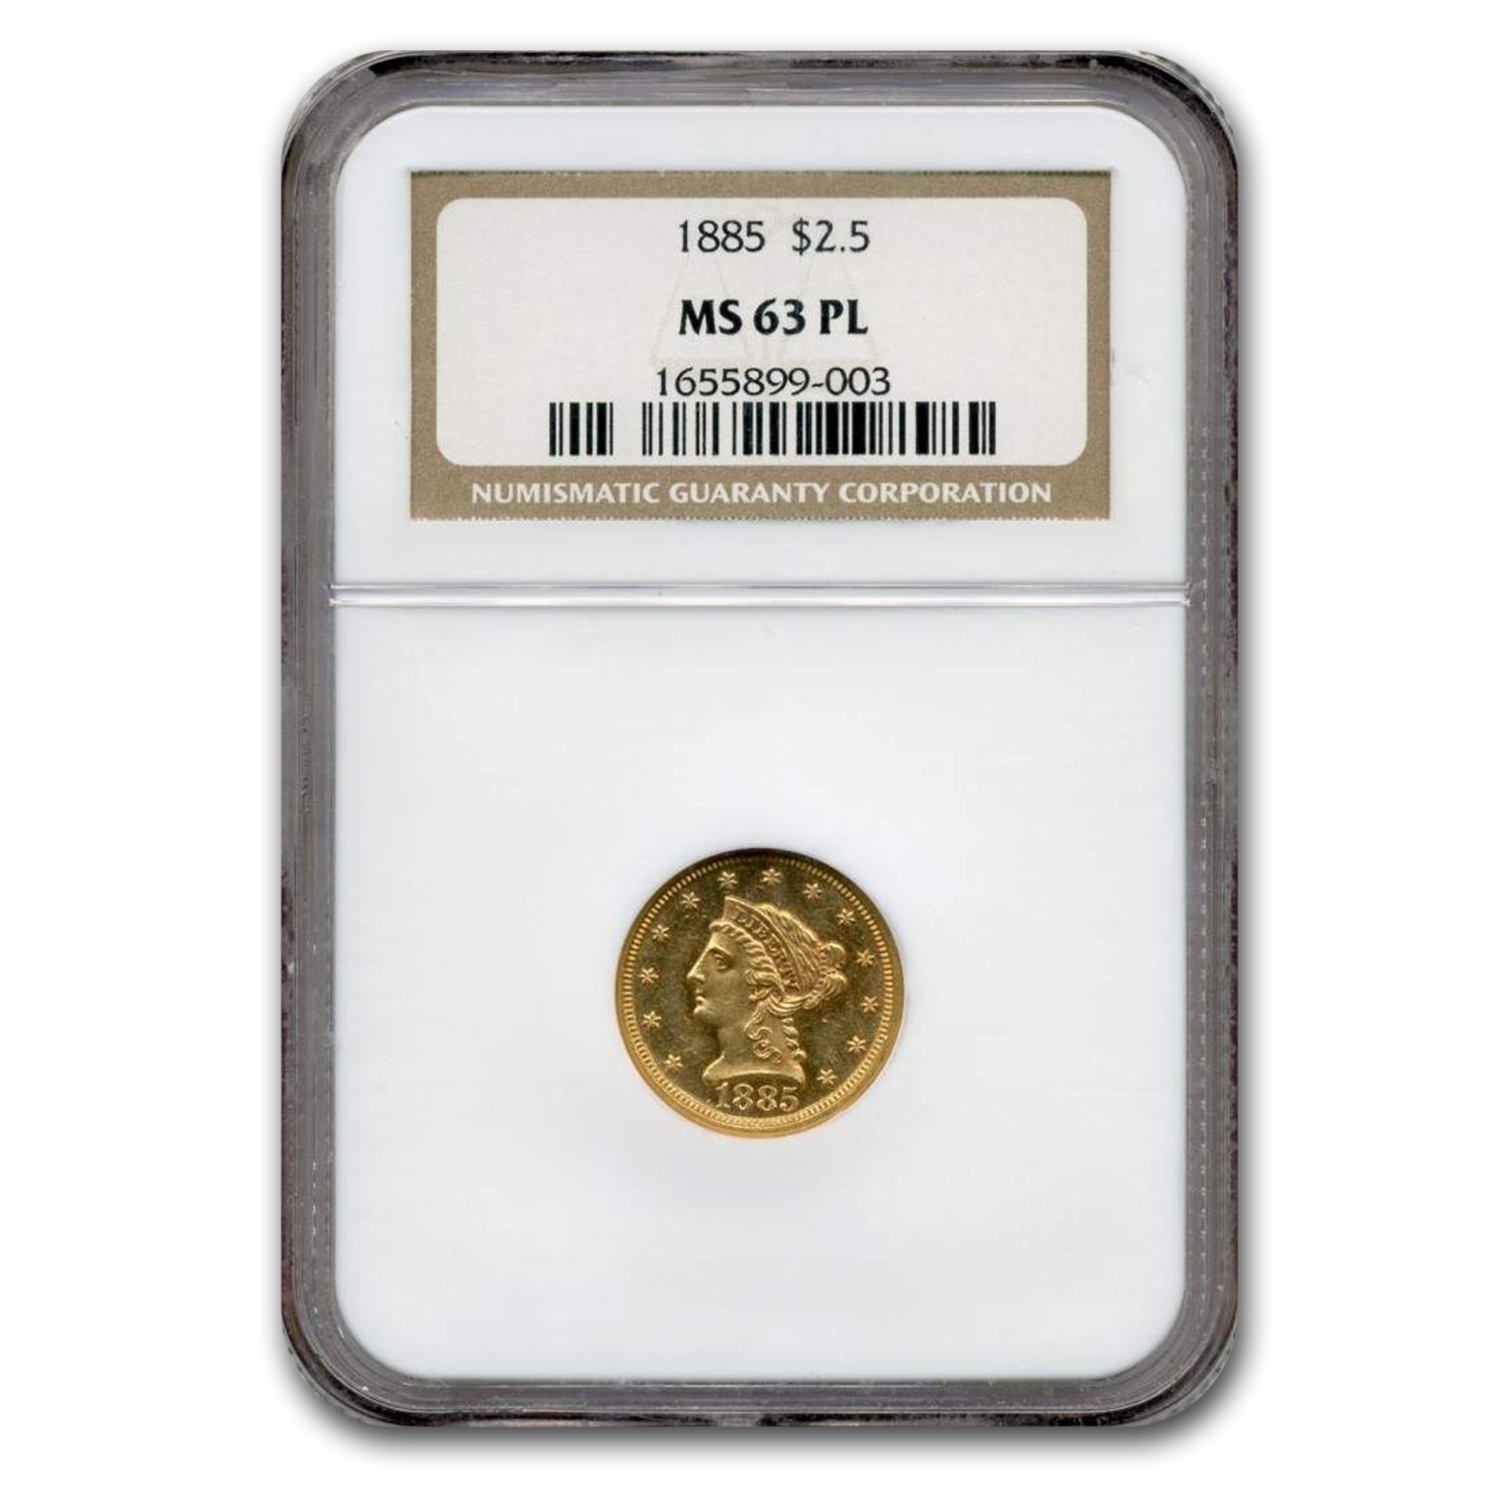 1885 $2.50 Liberty Gold Quarter Eagle MS-63 PL NGC